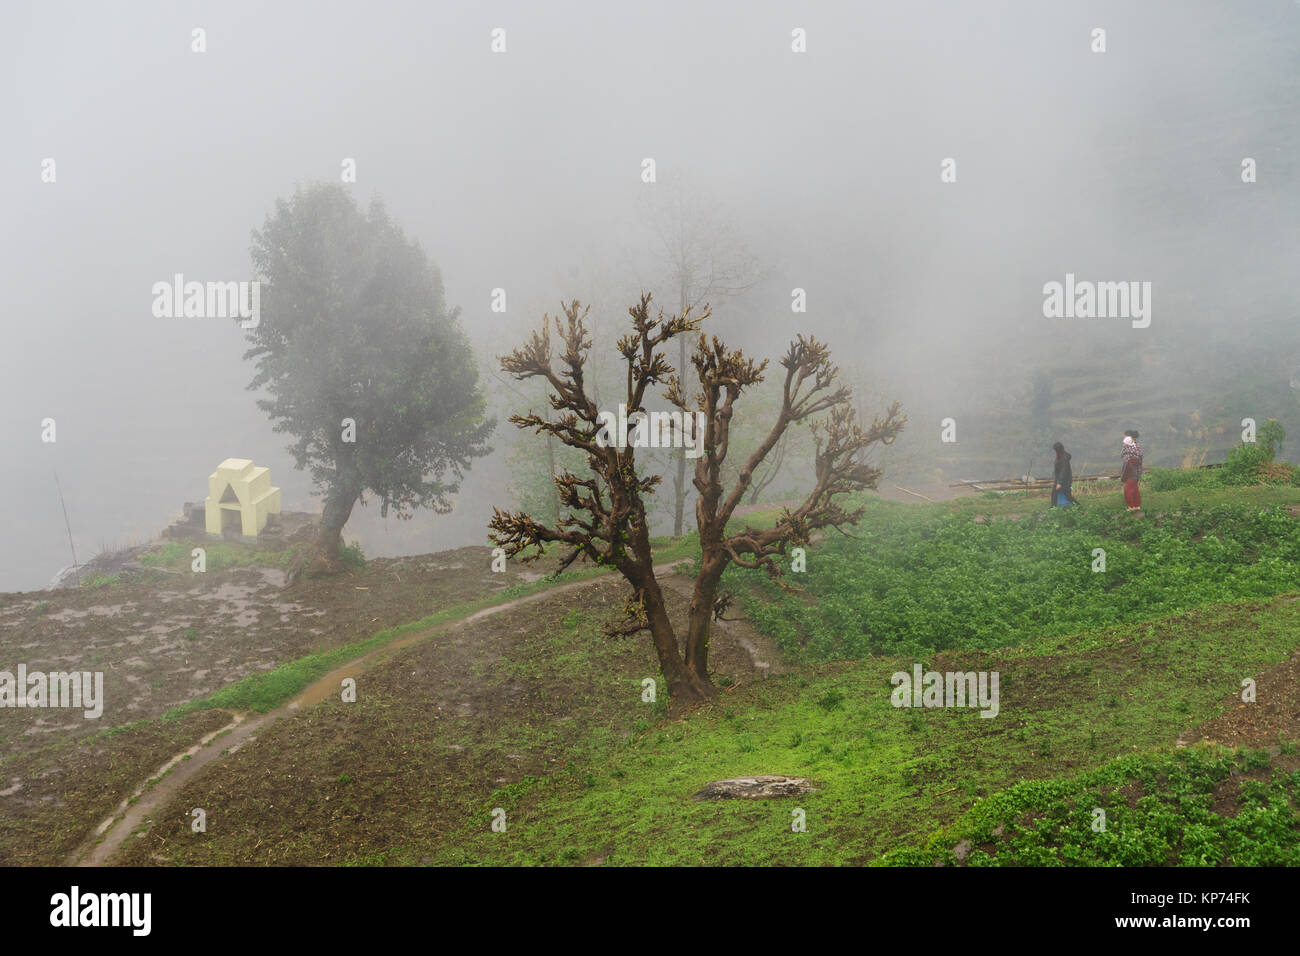 two-women-and-a-baby-walking-through-the-mist-in-ulleri-annapurna-KP74FK.jpg